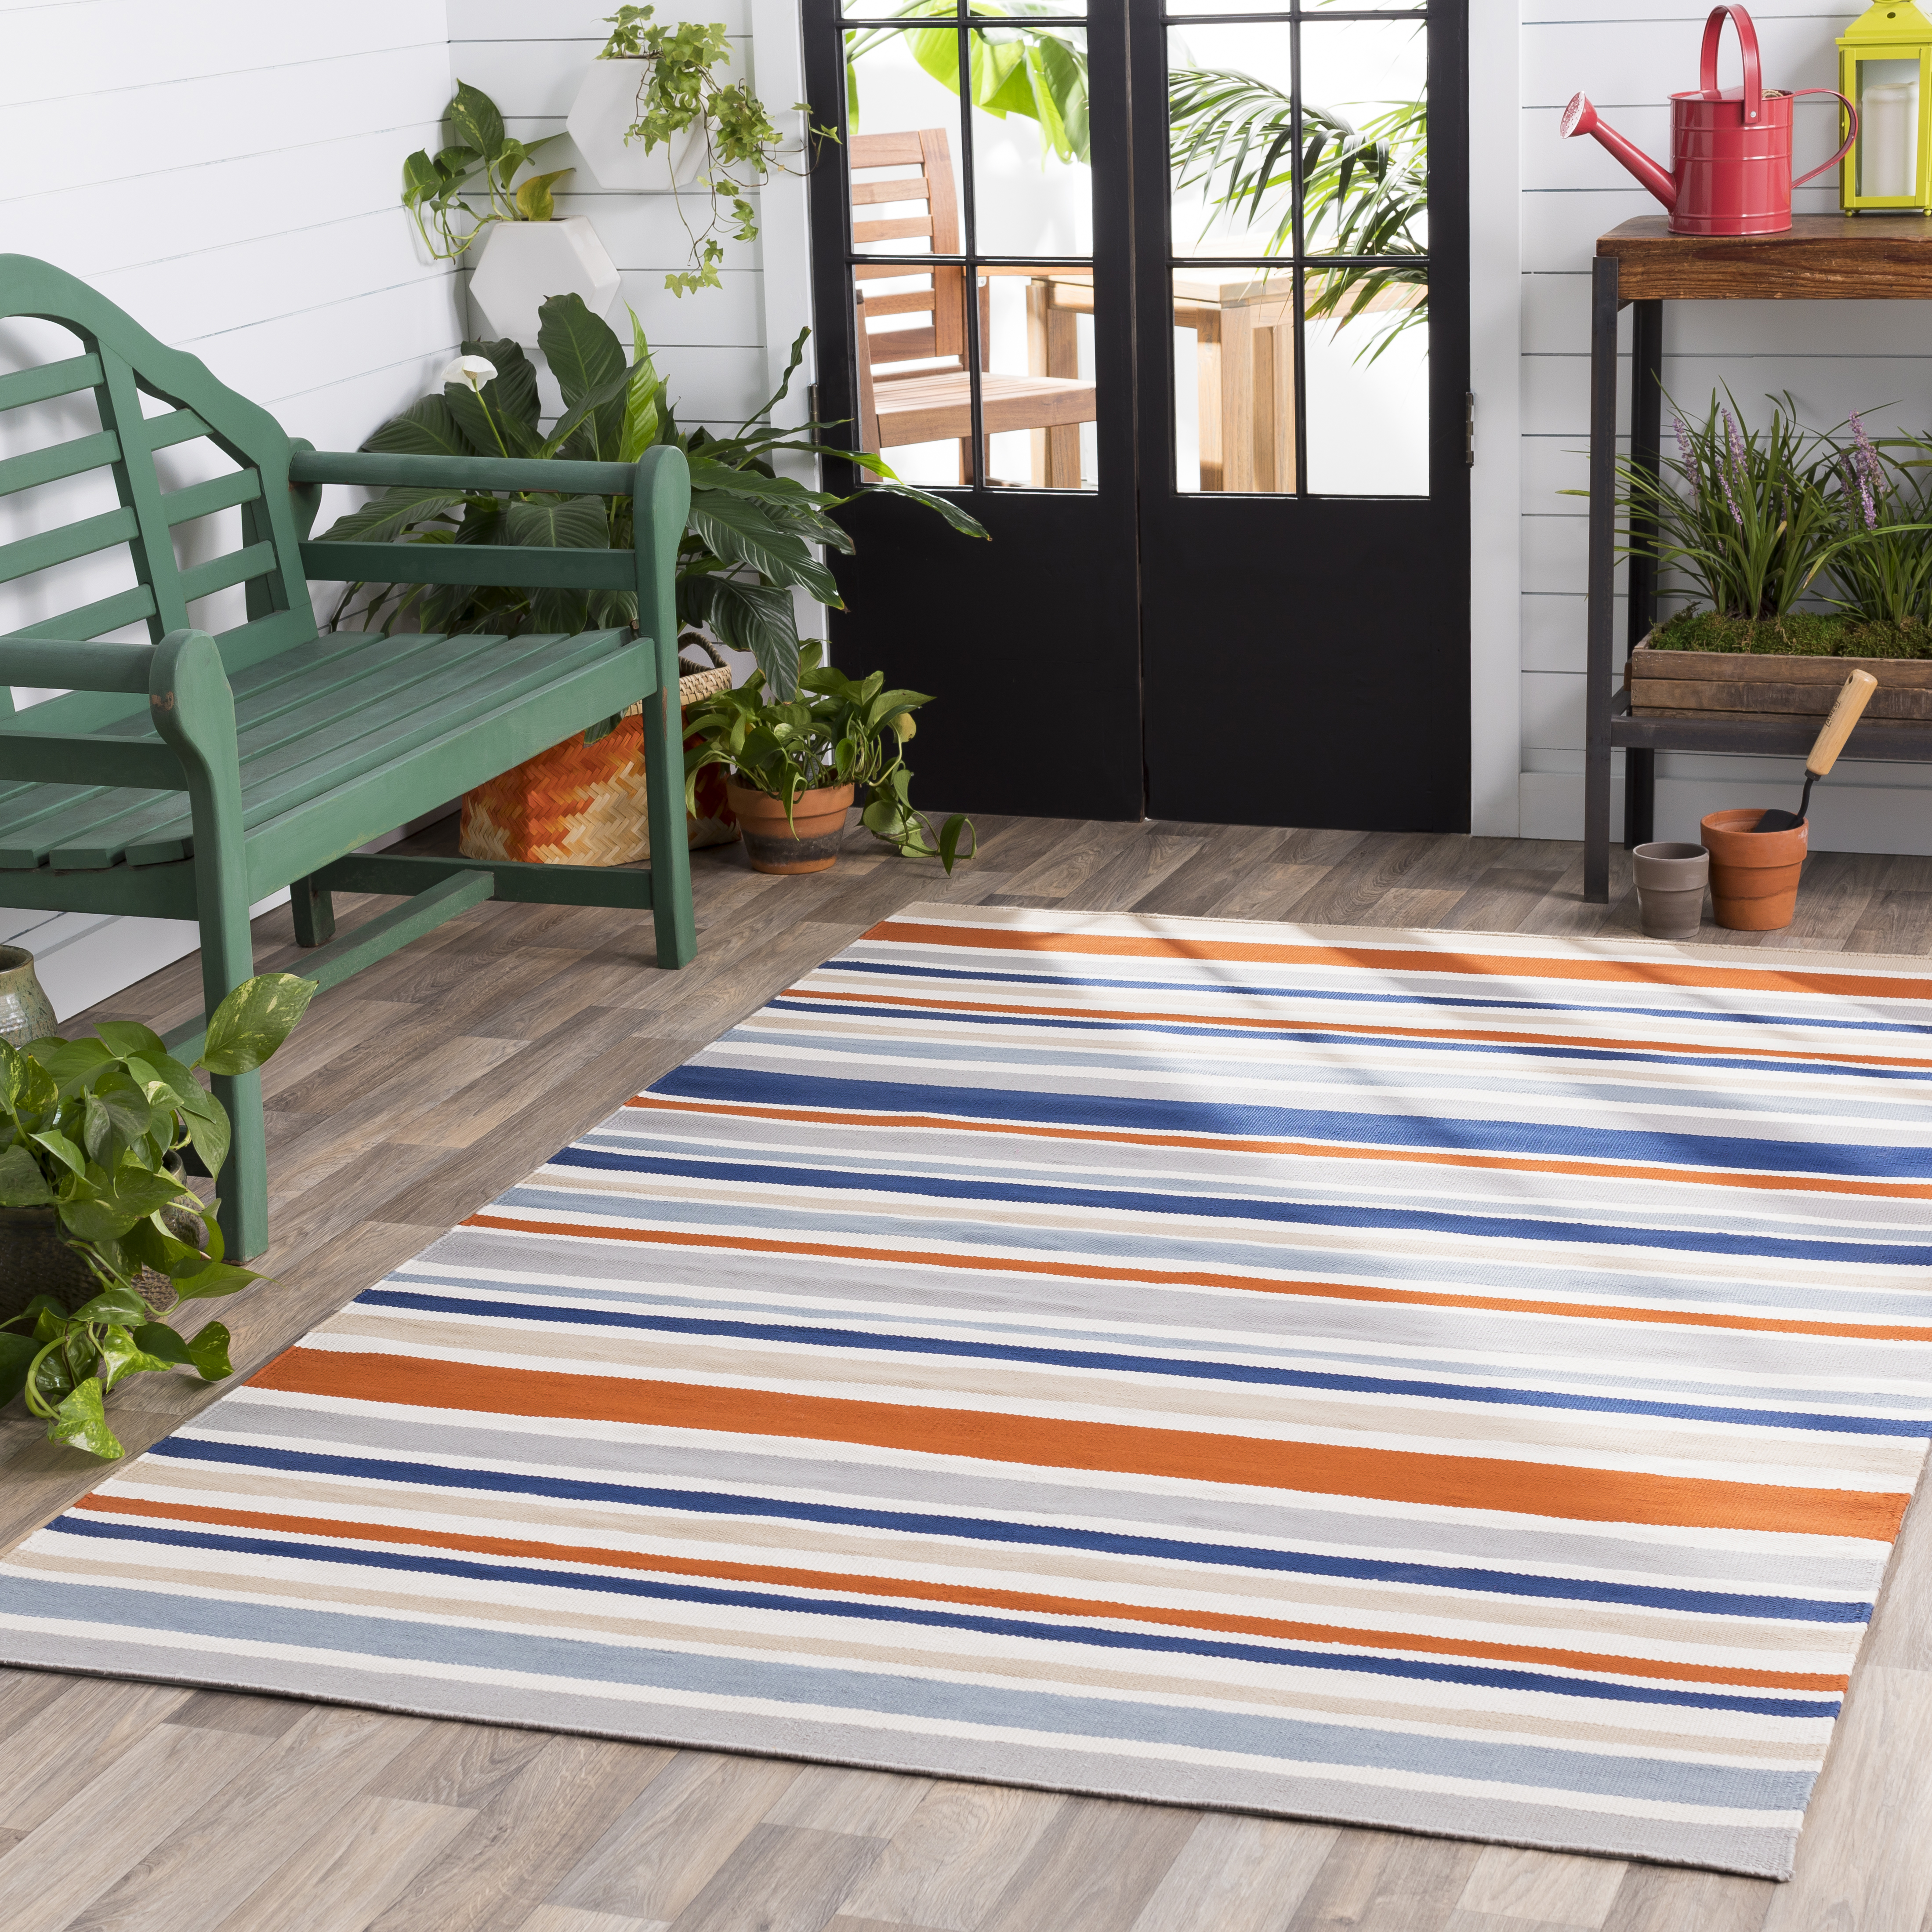 Of Indoor Outdoor Rugs In Partnership With The High Performance Fabric Manufacturer Bella Dura Constructed Solution Dyed Polyolefin